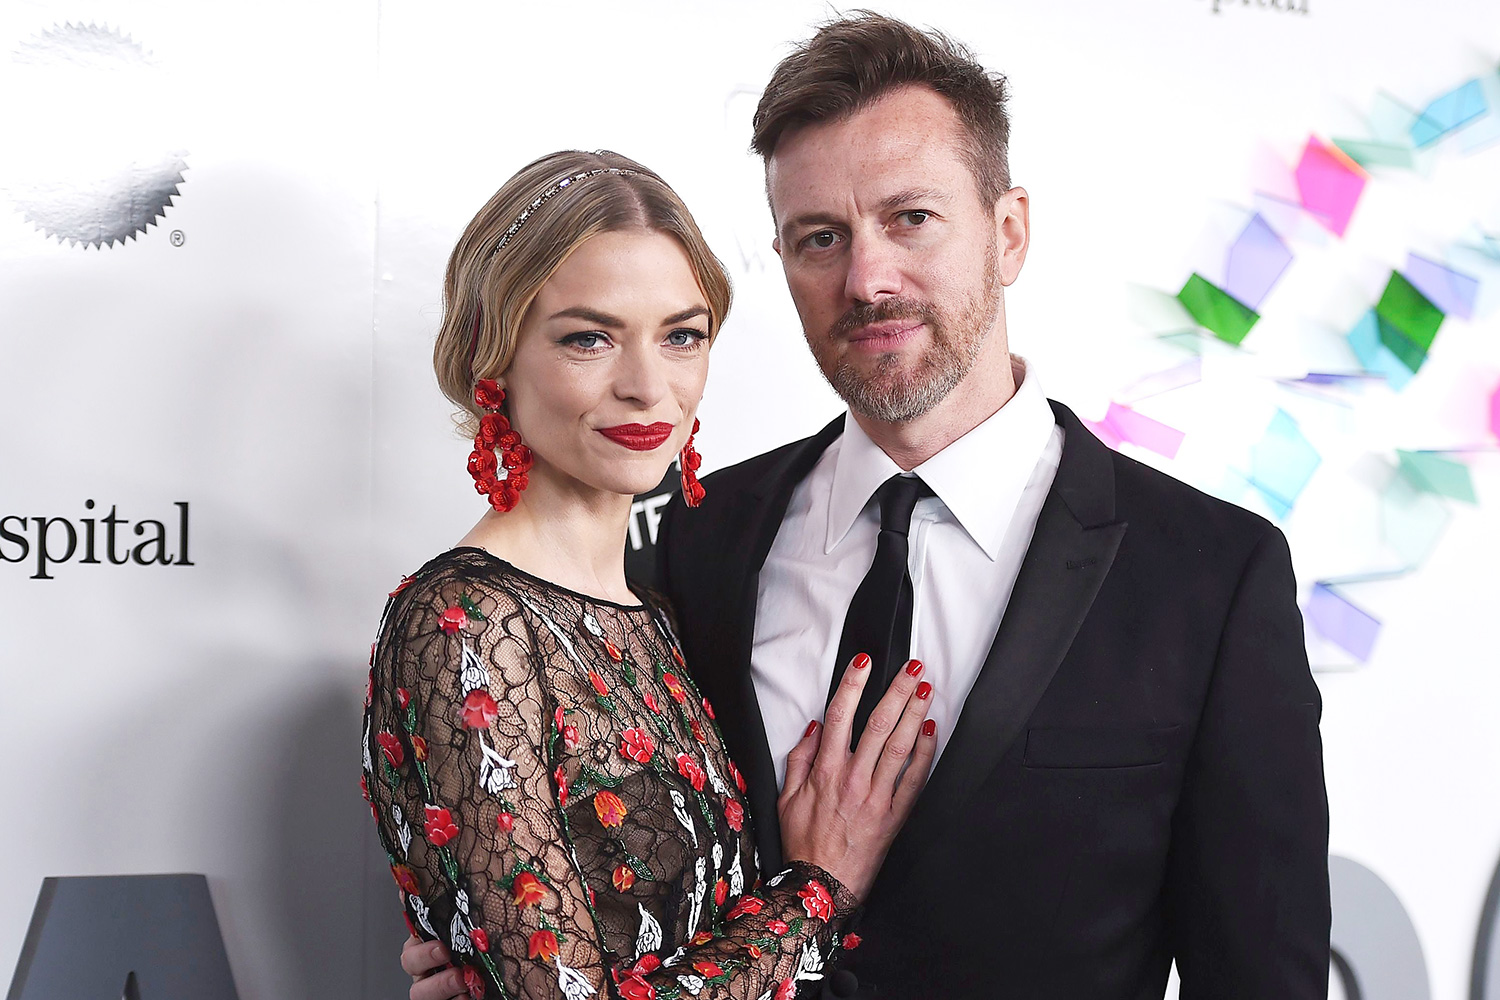 Jaime King and Kyle Newman arrive at the Kaleidoscope 5: LIGHT event on in Culver City, Calif Kaleidoscope 5: LIGHT, Culver City, USA - 5 May 2017